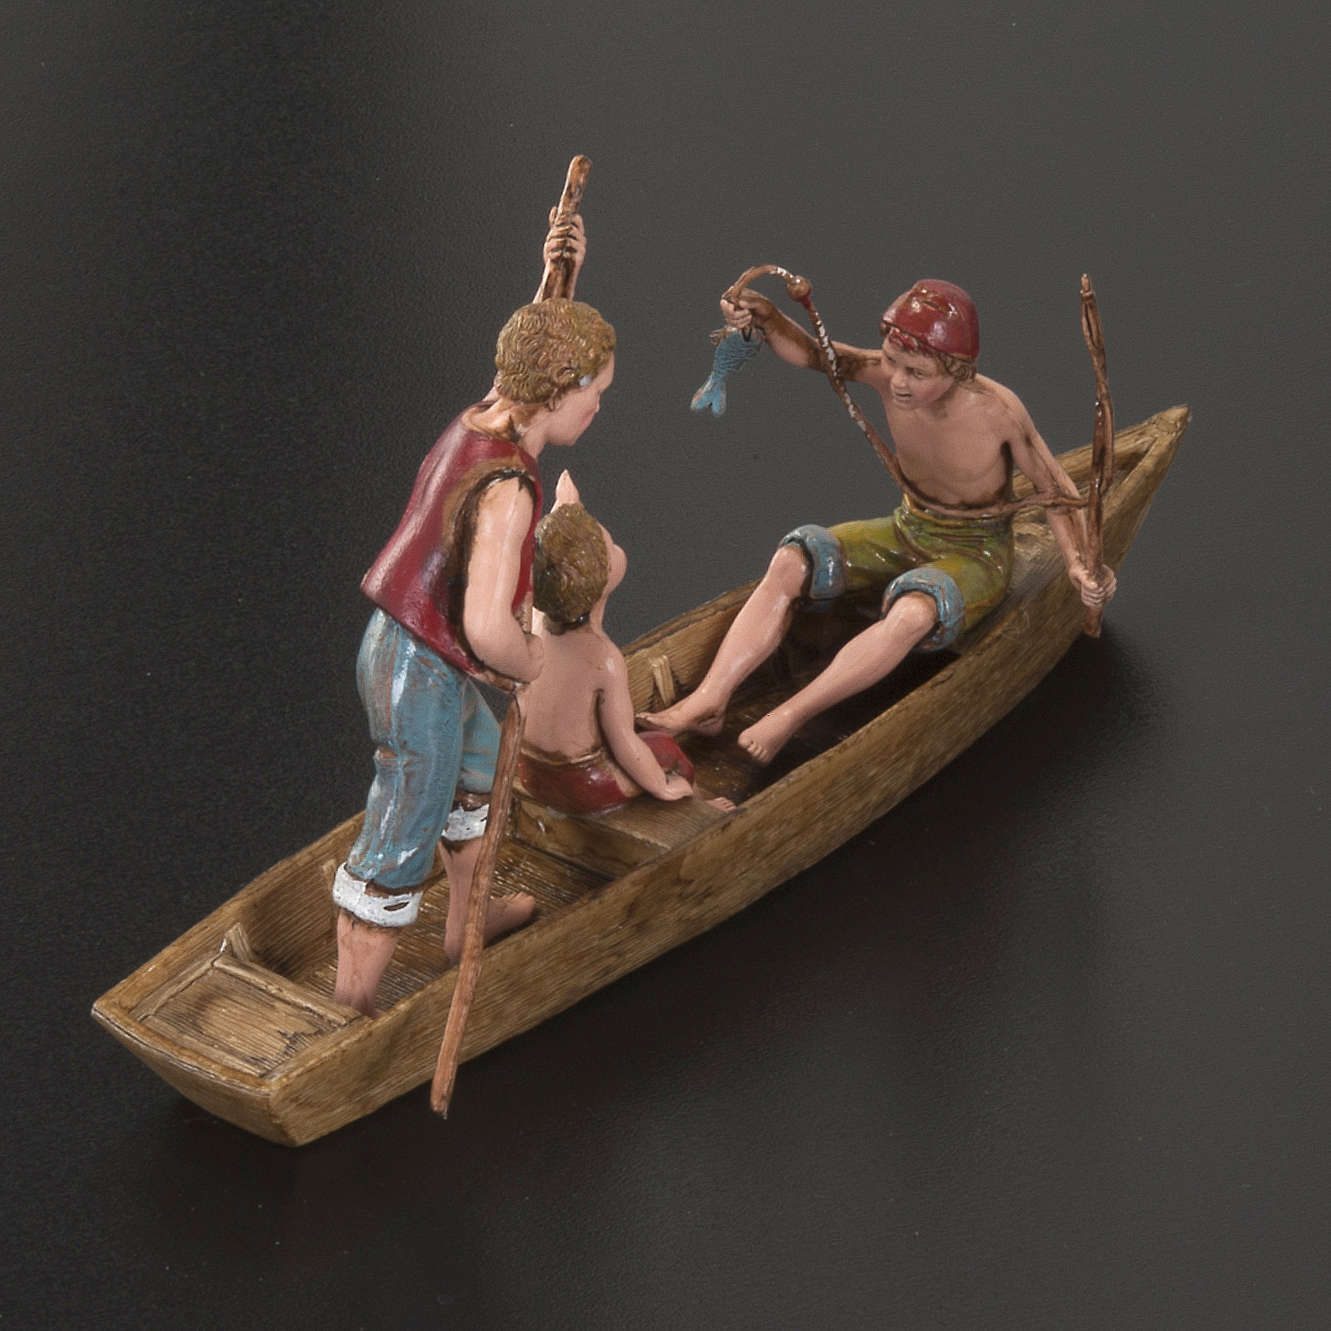 Figurines for Moranduzzo nativities, boat with 3 men 10cm 3